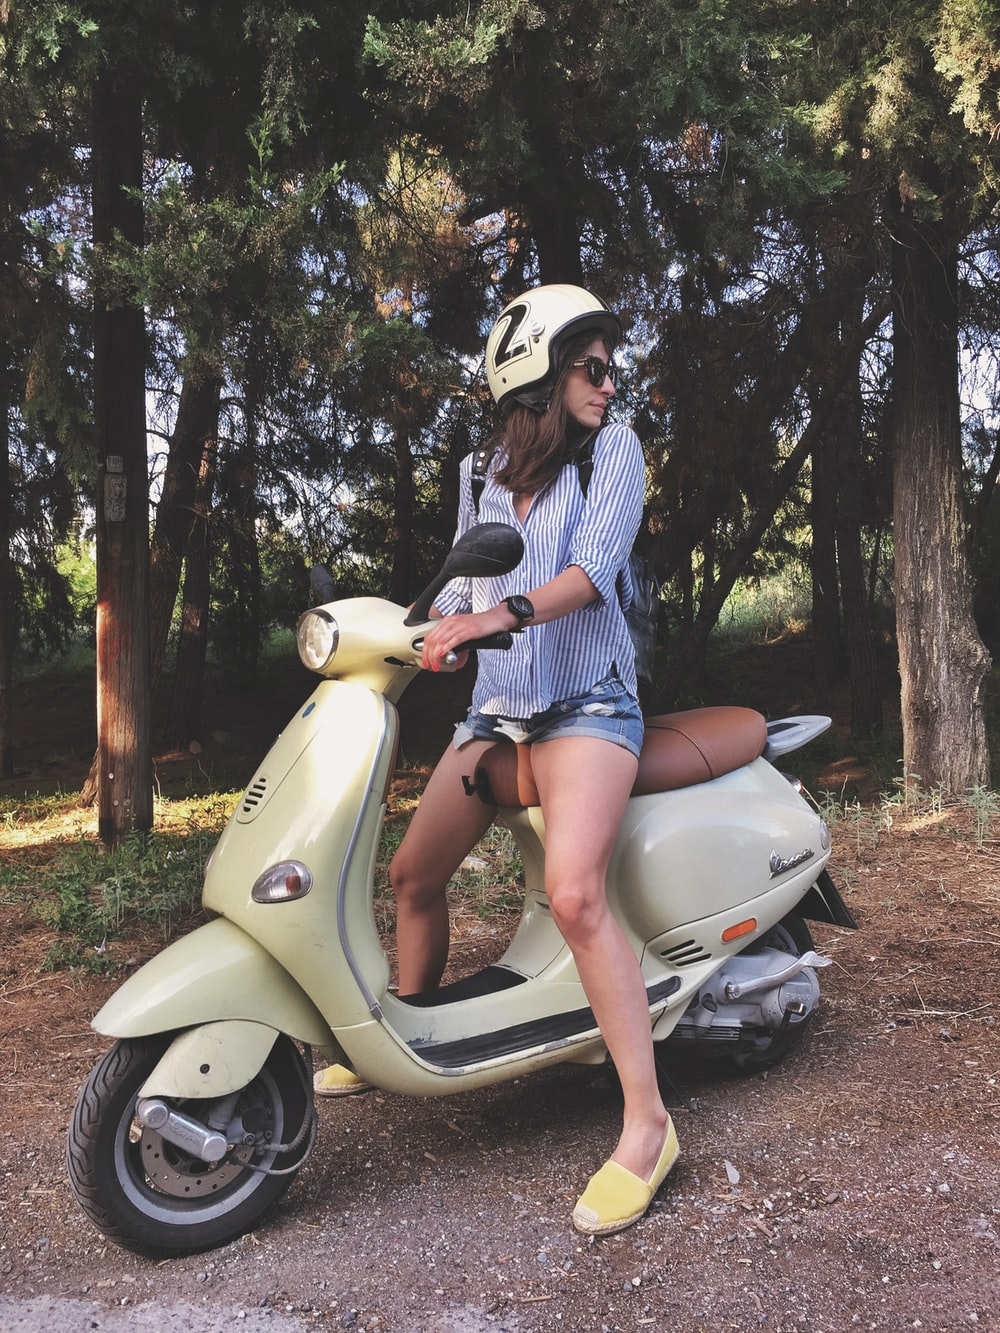 woman riding on scooter